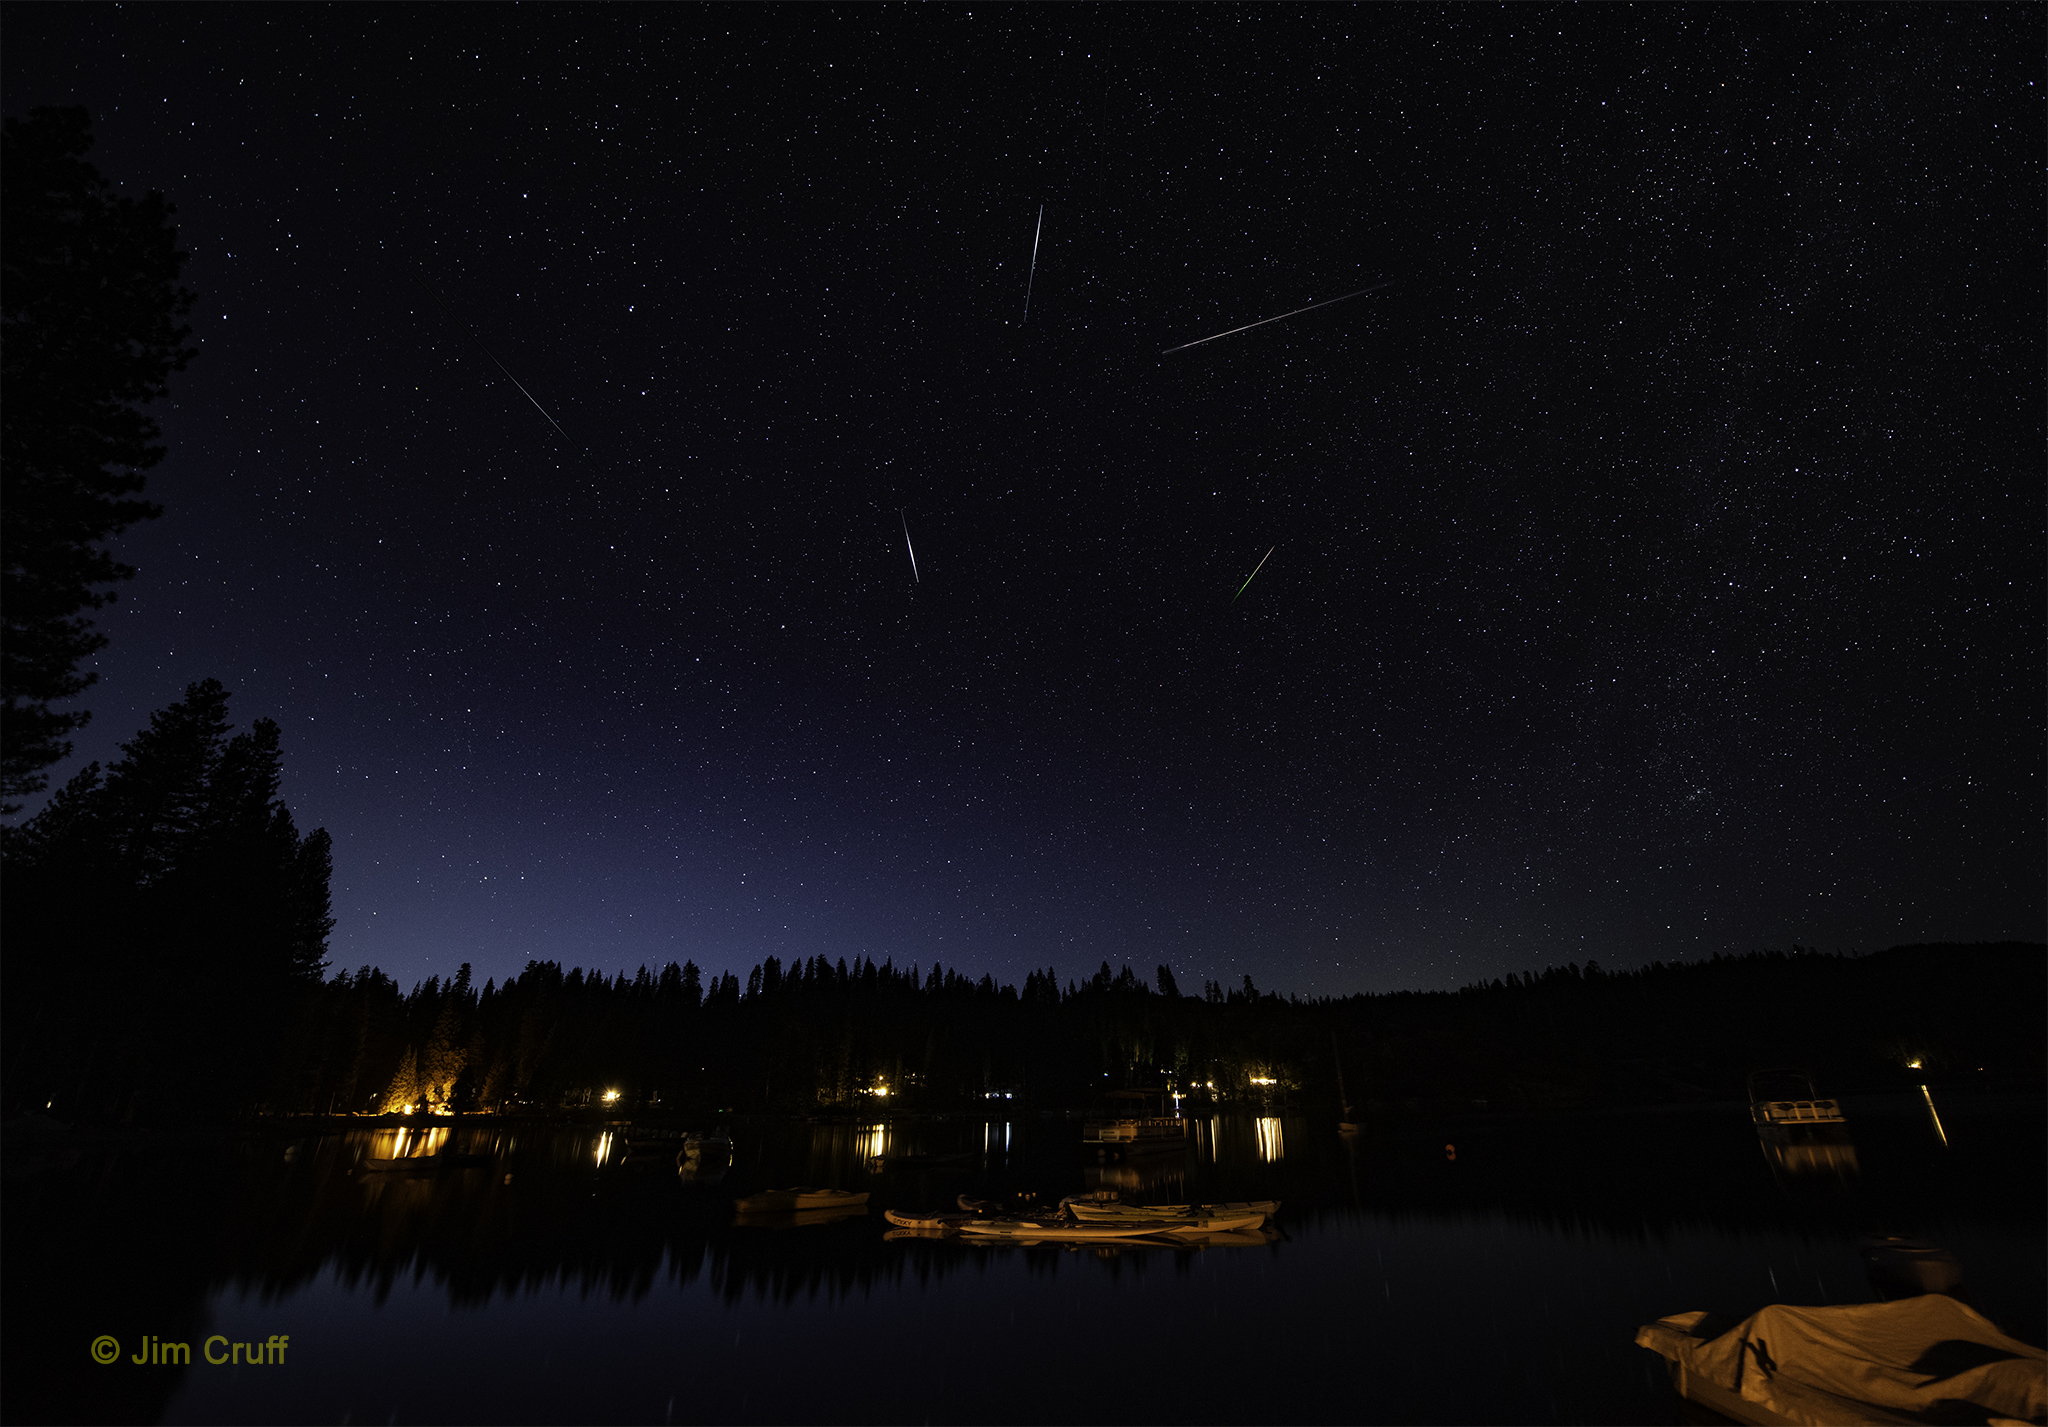 The 2020 Perseid meteor shower is peaking: How to observe the demonstrate